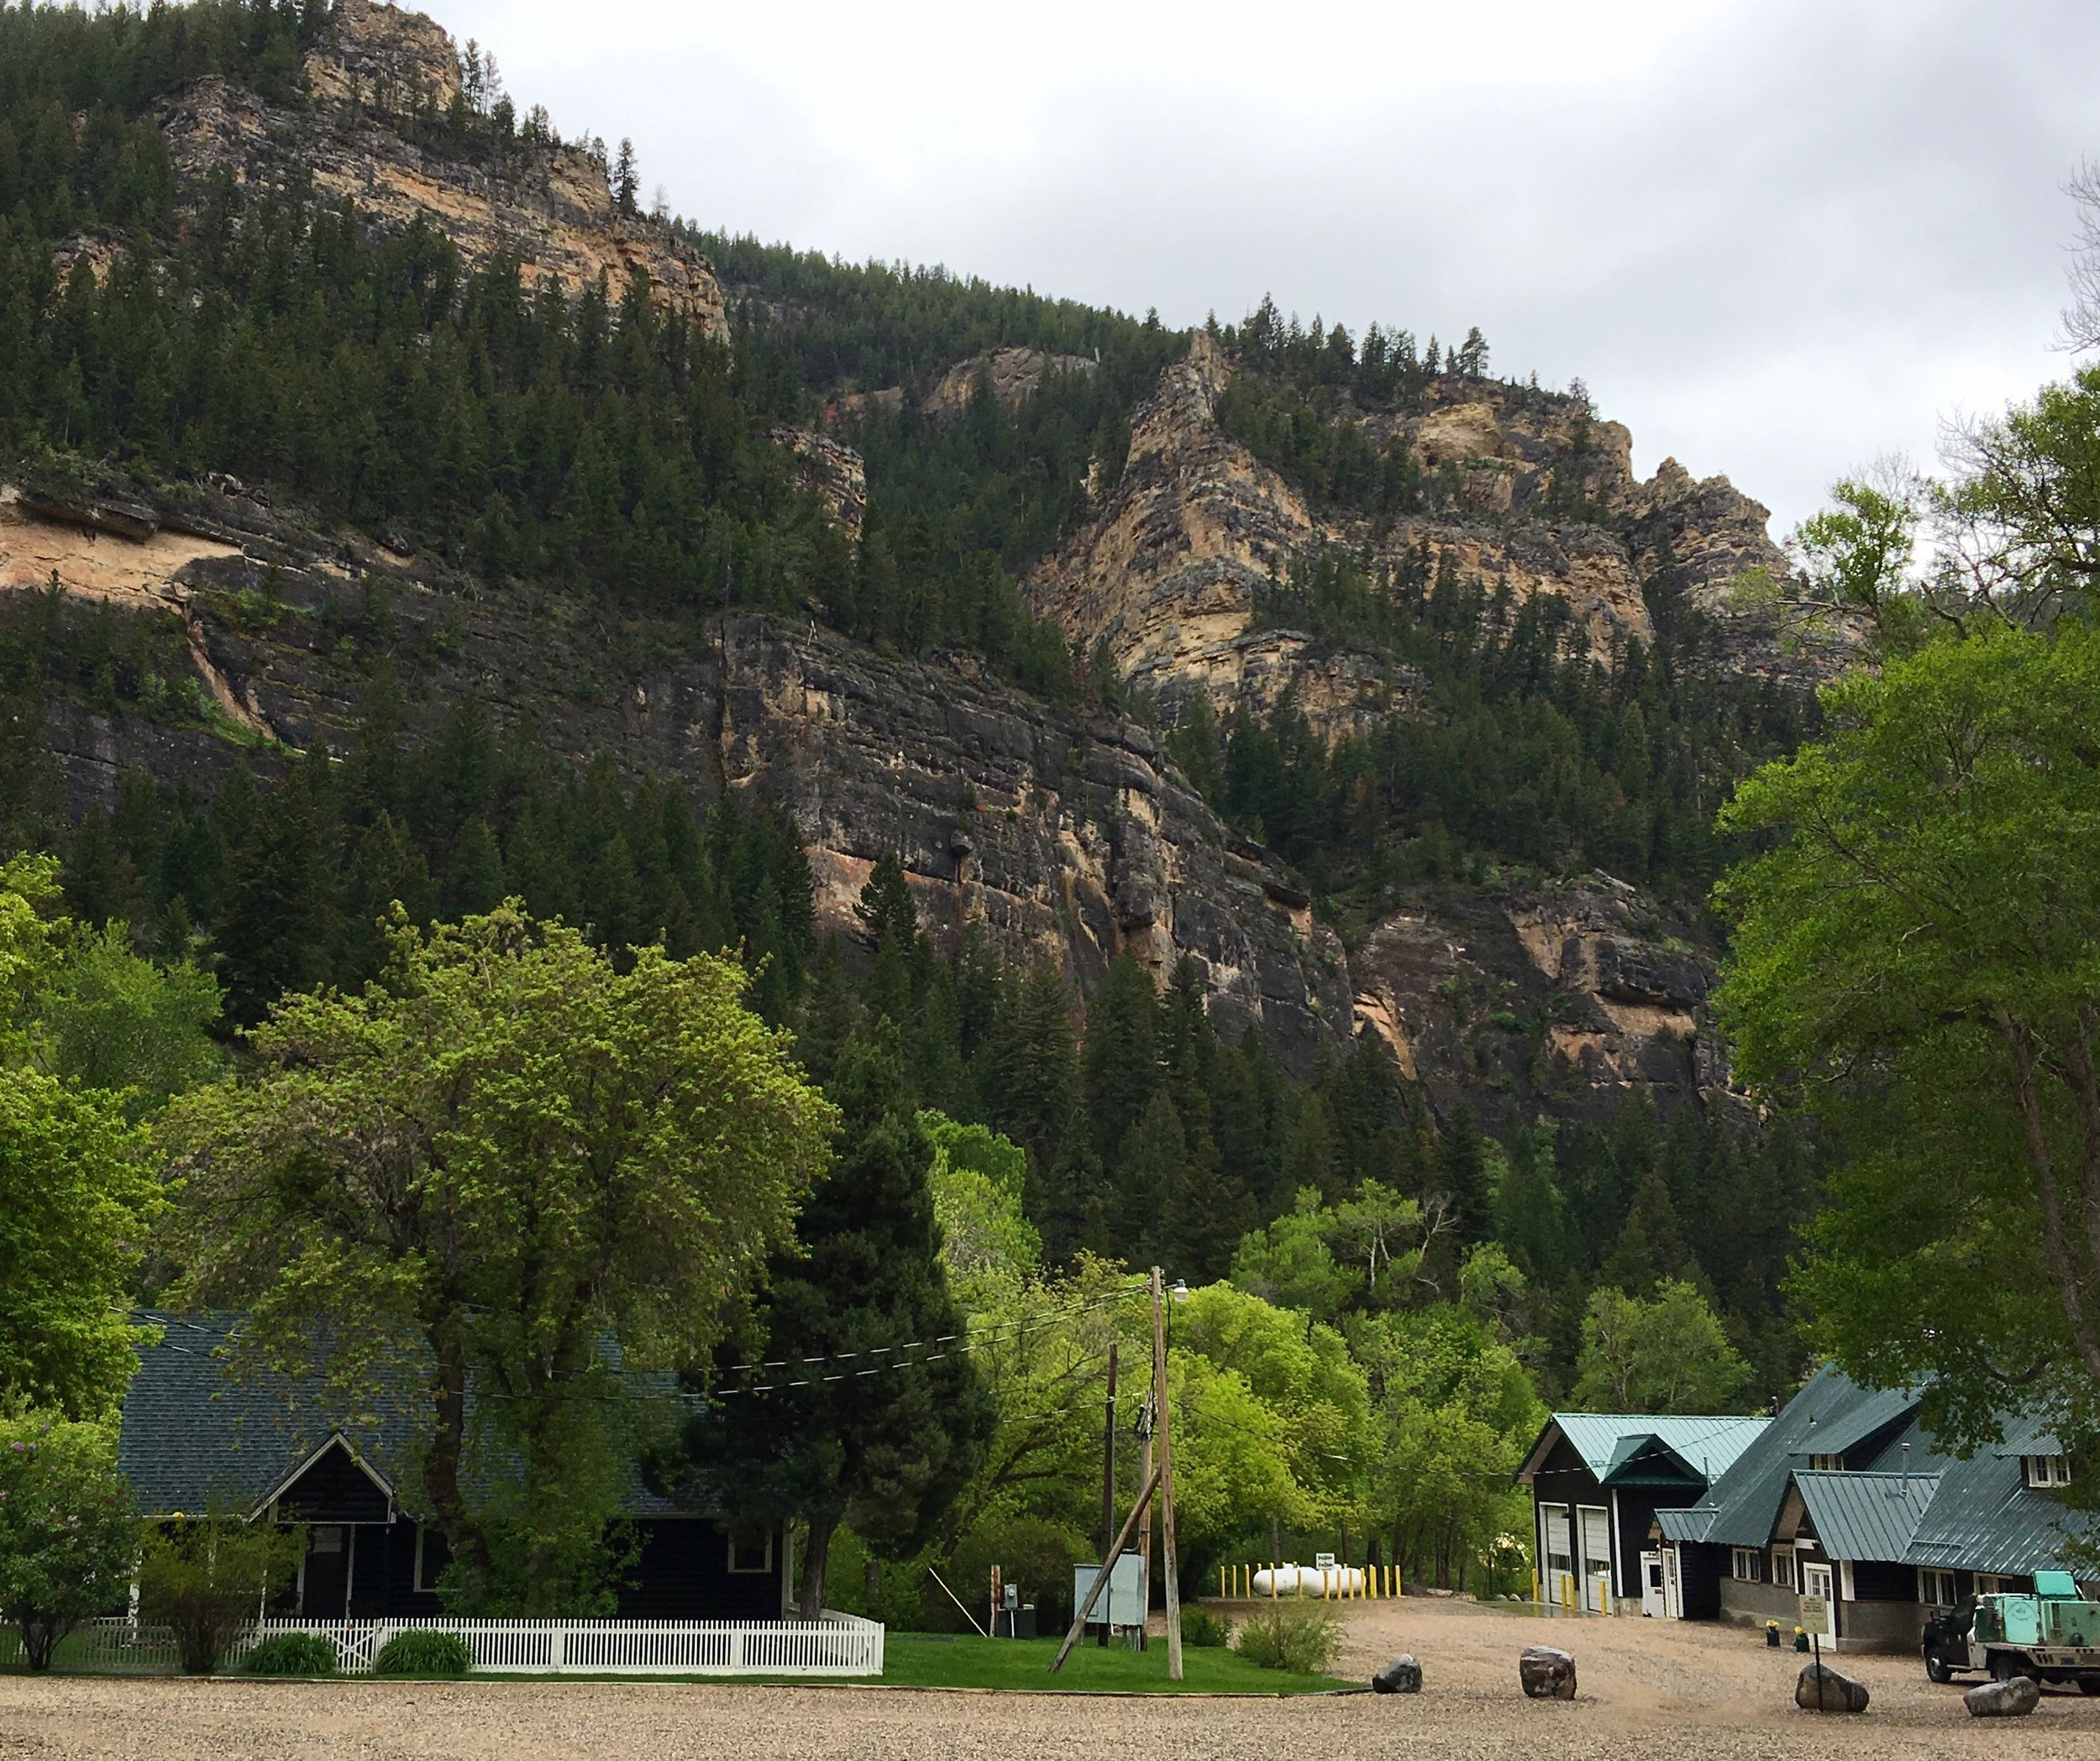 The fish hatchery and staff quarters in lovely Tensleep canyon